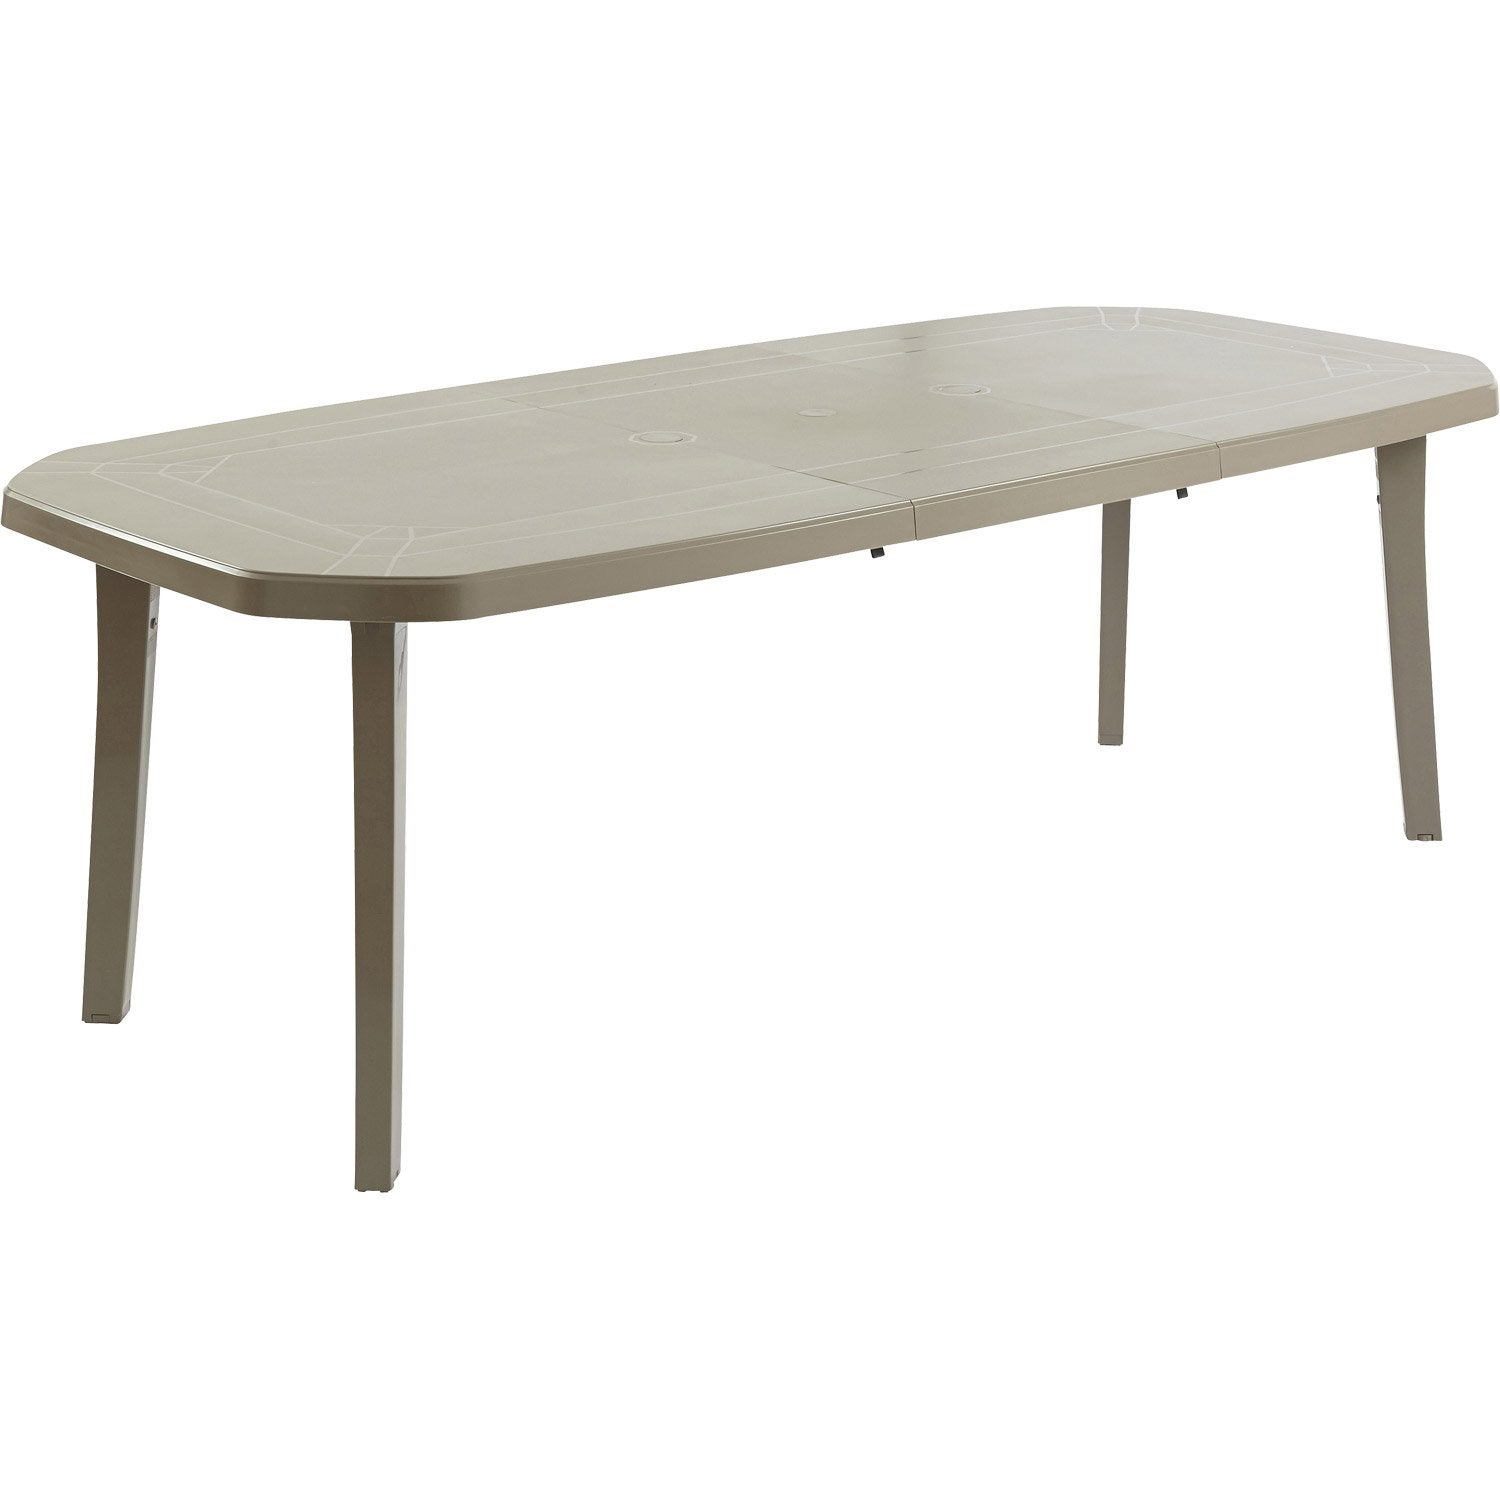 Table de jardin grosfillex miami rectangulaire taupe 10 for Bache salon de jardin leroy merlin